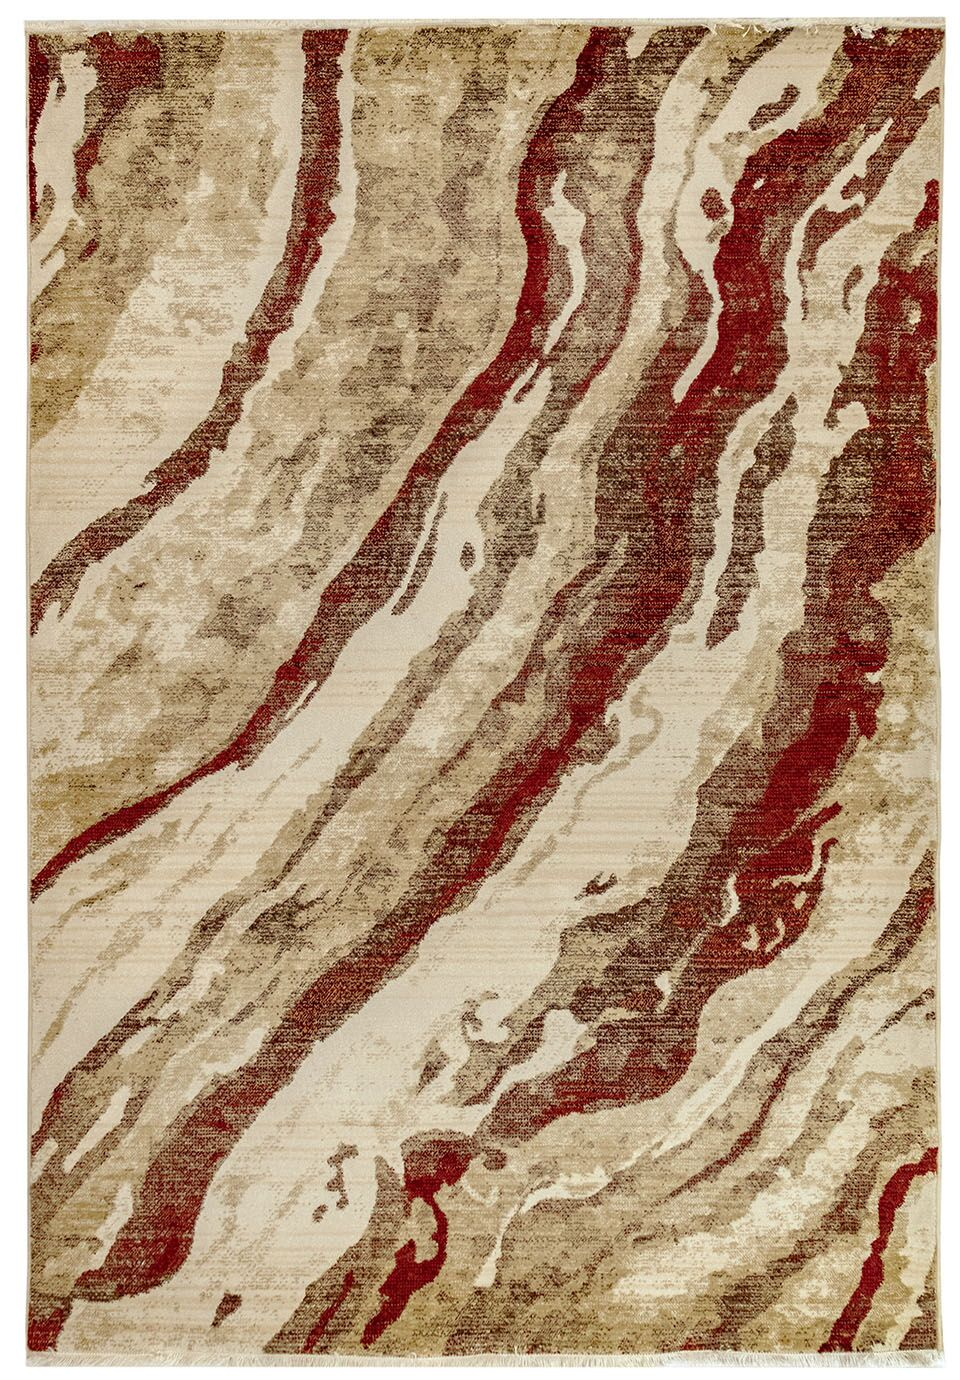 Olive Brown/Red Area Rug Size: Rectangle 4'11